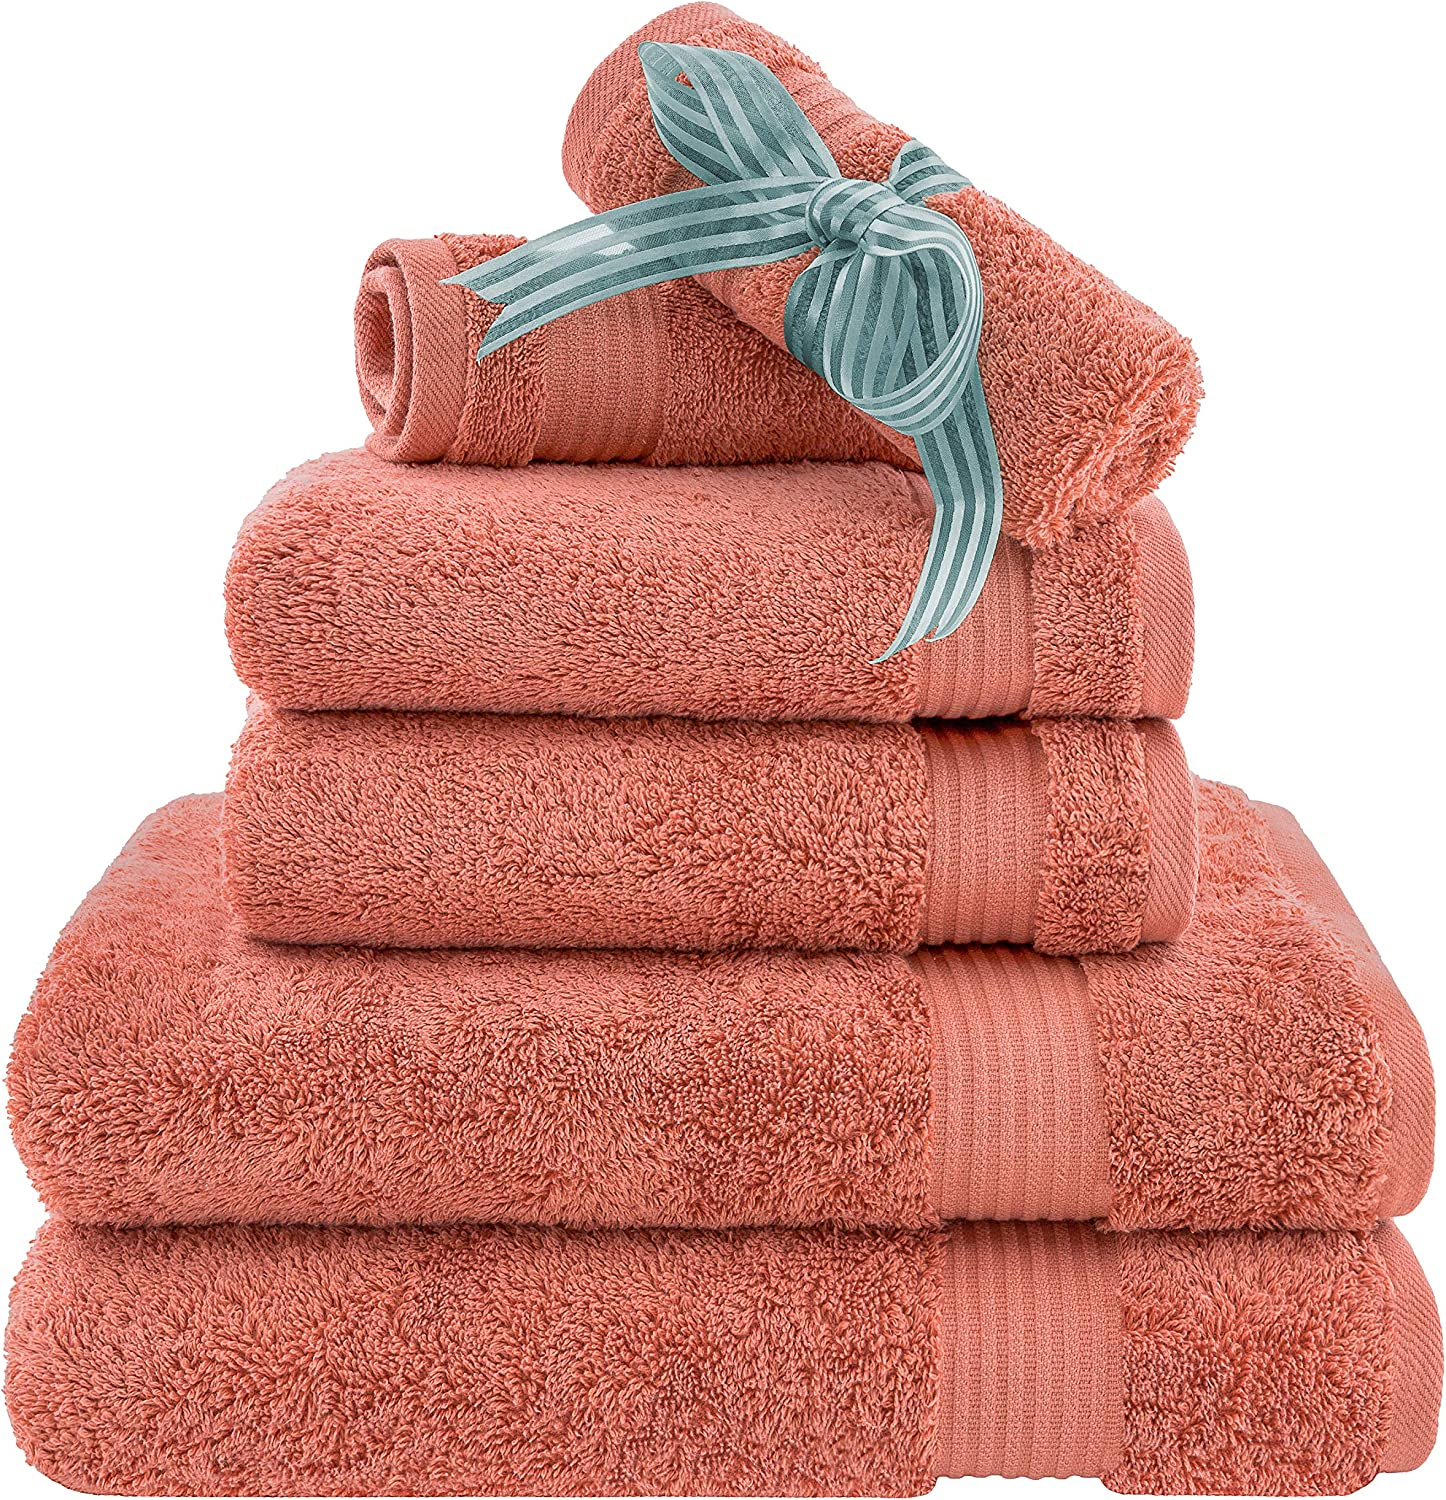 Amazon Com Hotel Spa Quality Super Absorbent And Soft Cotton 6 Piece Turkish Towel Set For Kitchen And Decorative Bathroom Sets Includes 2 Bath Towels 2 Hand Towels 2 Washcloths Coral Kitchen Dining